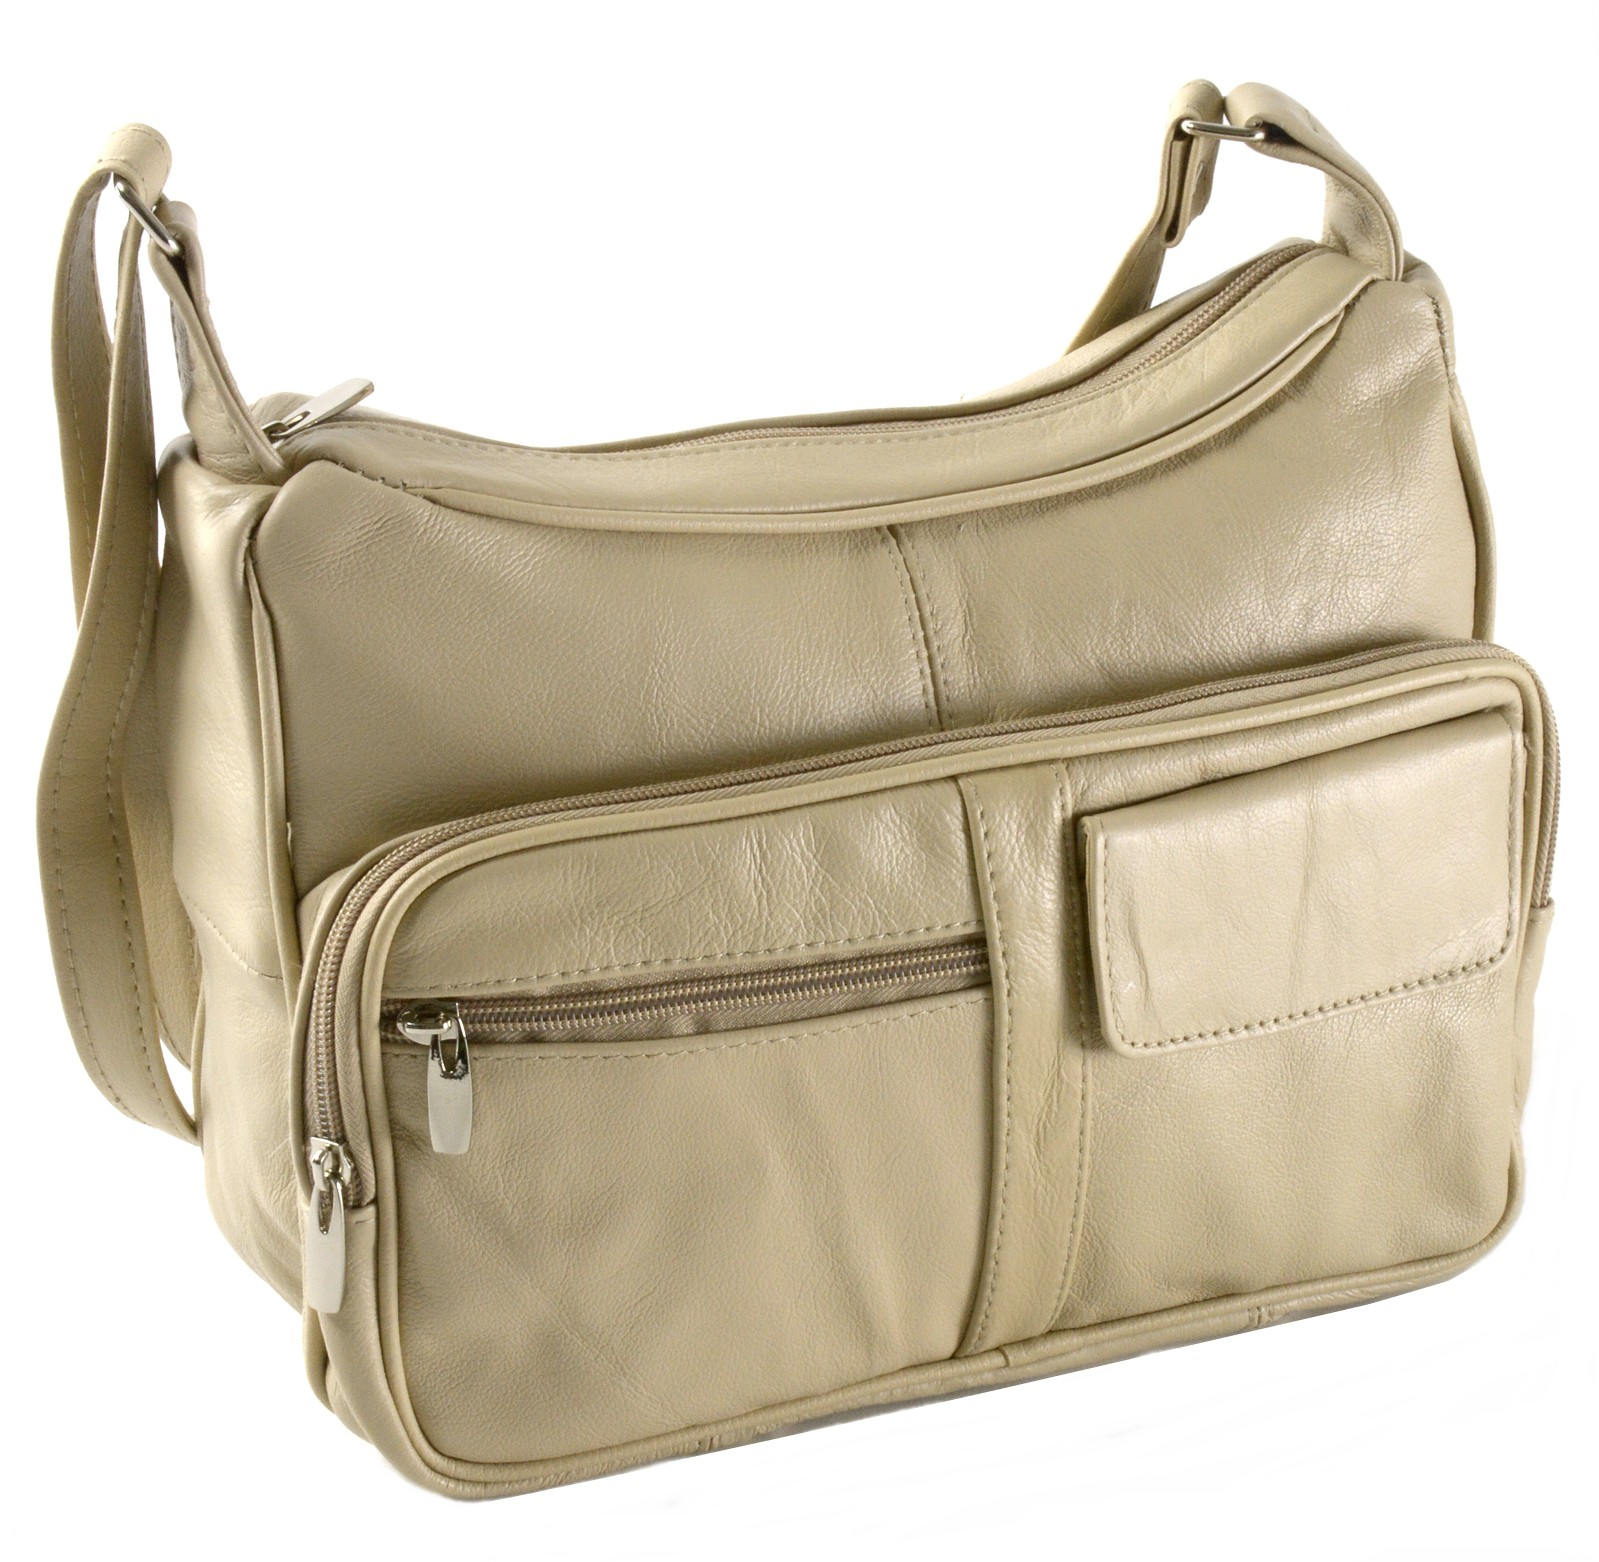 eb4fcd5a77693d Leather Bag With Pockets | Stanford Center for Opportunity Policy in ...